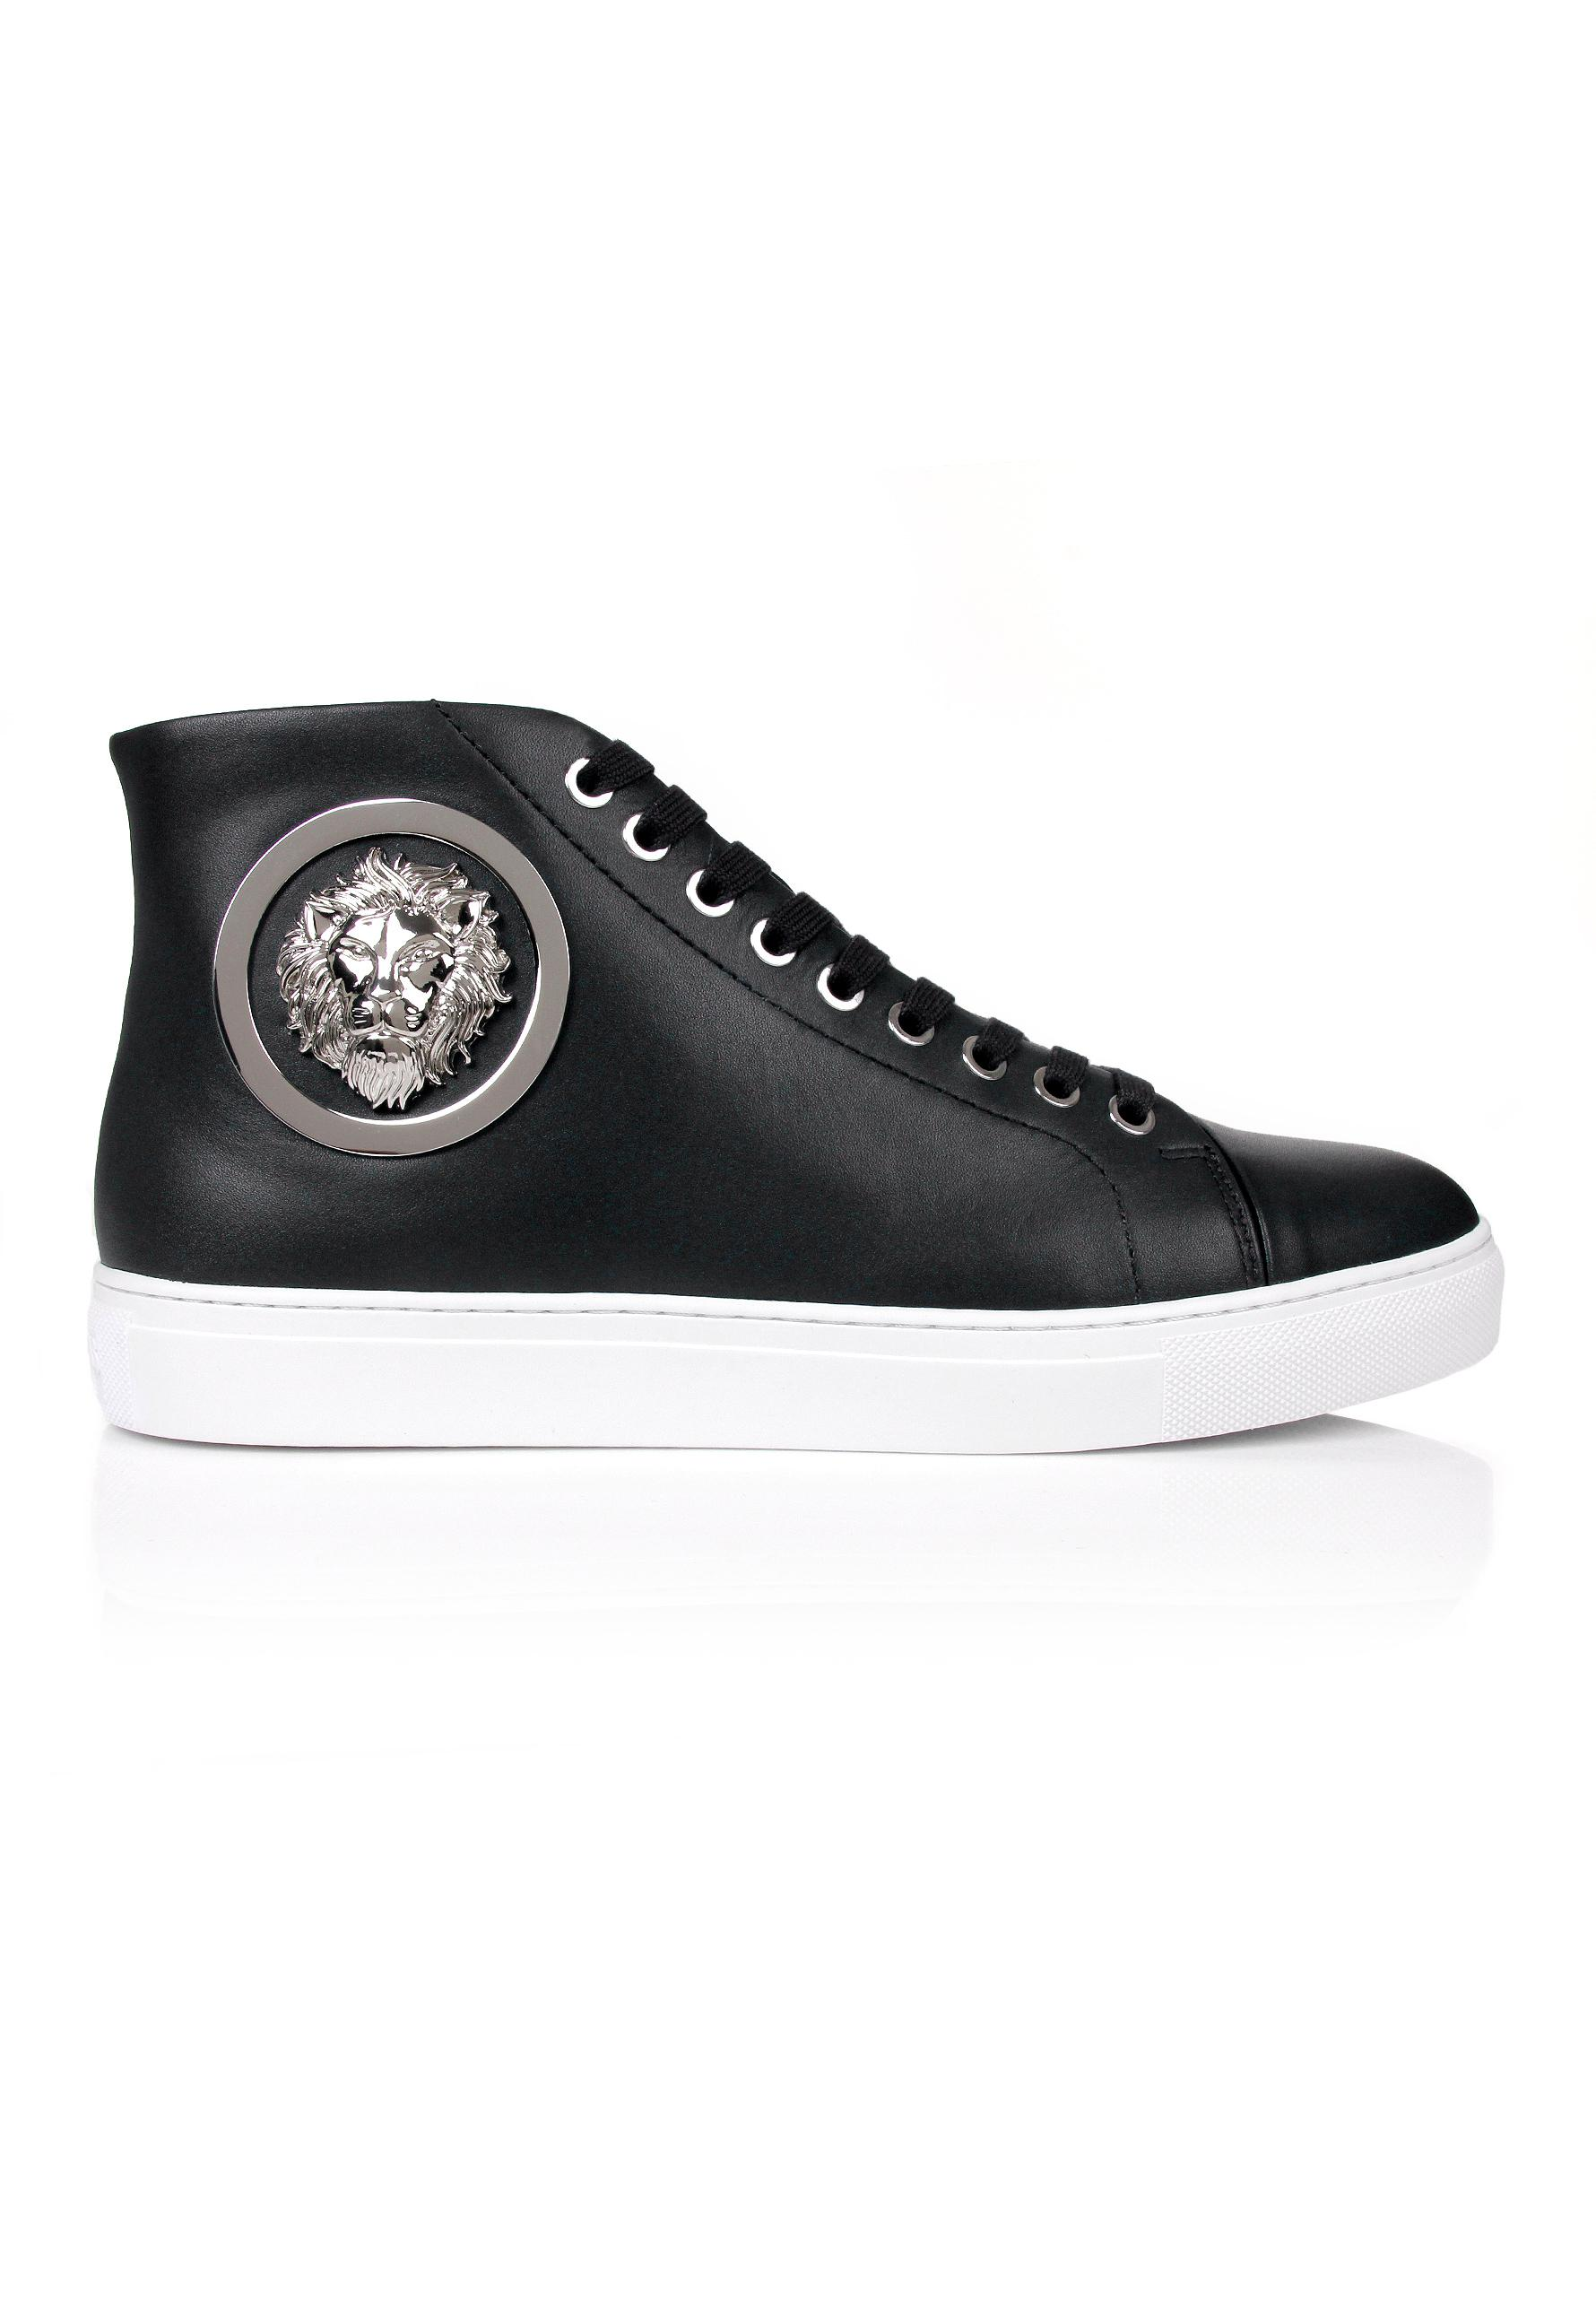 Versus Versace High-top trainers - black/light gold 8N41H2